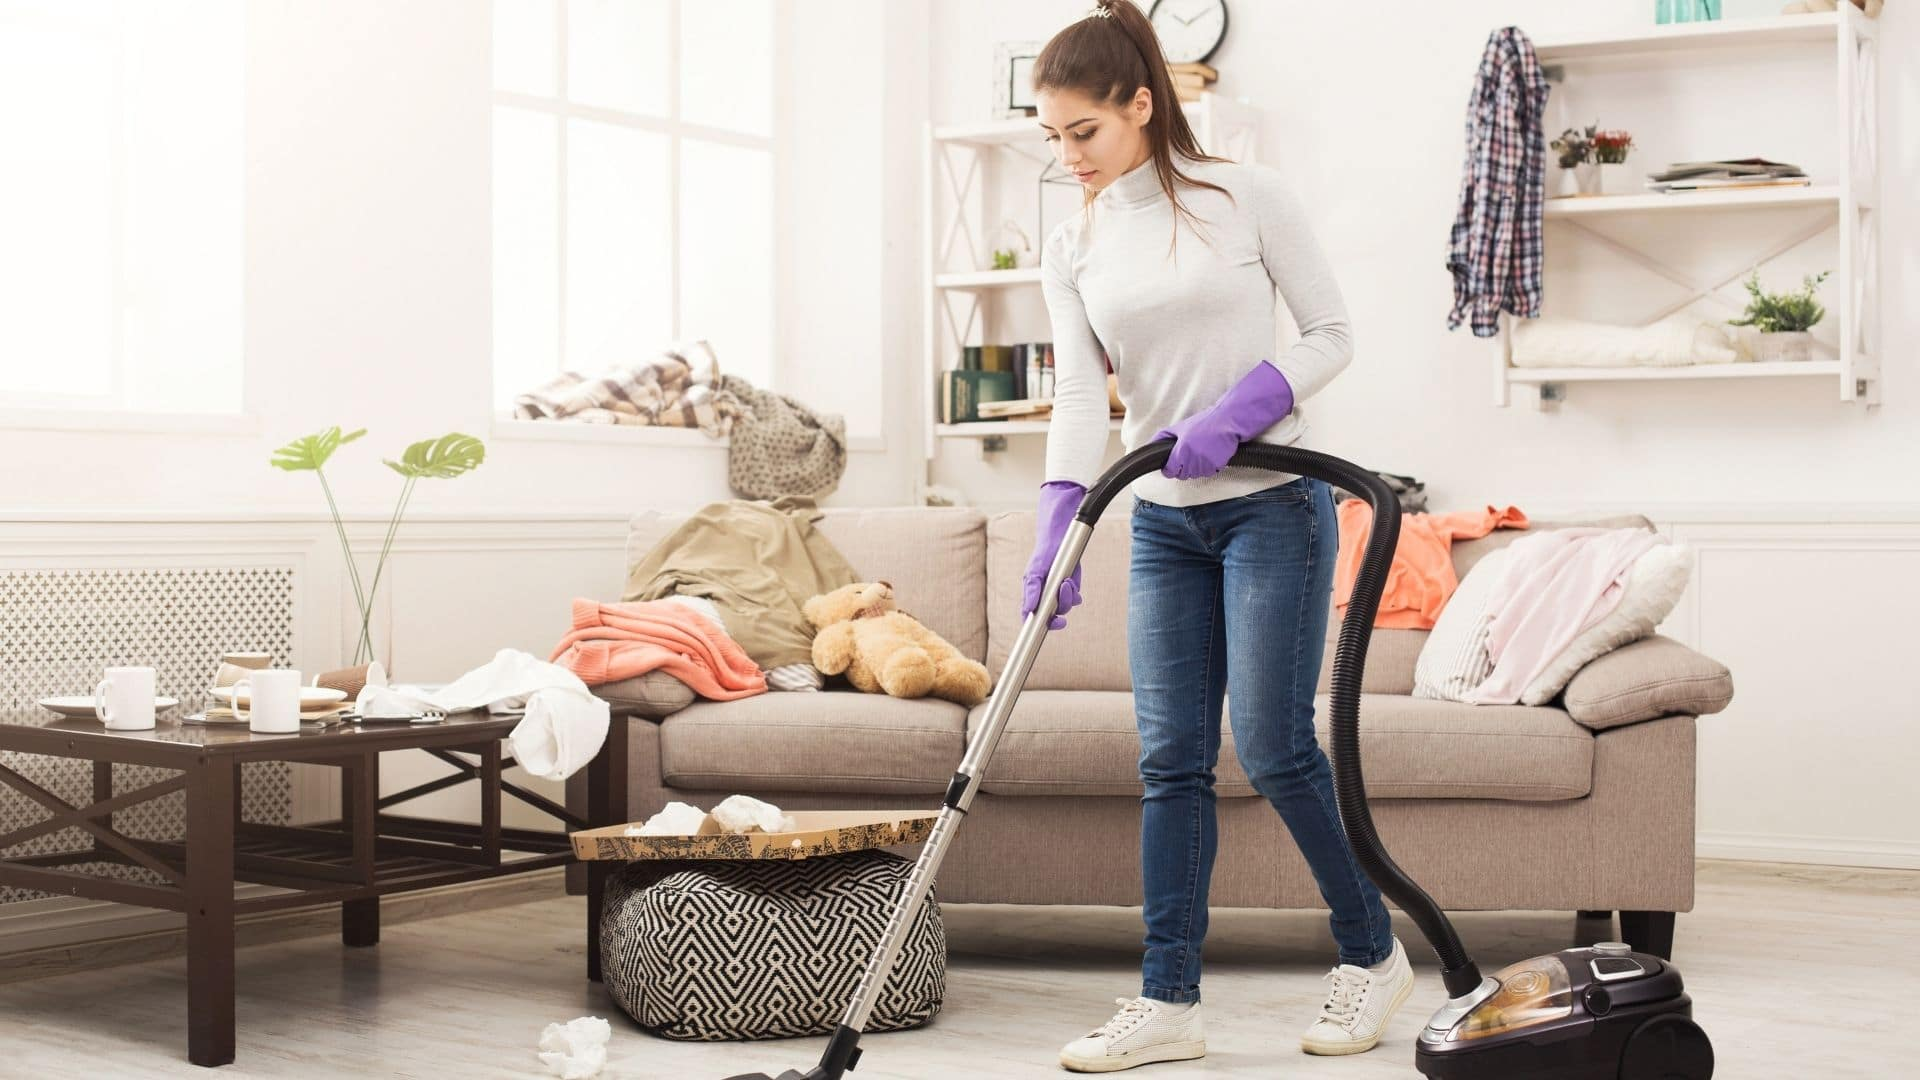 woman housecleaning with vacuum to prevent allergies